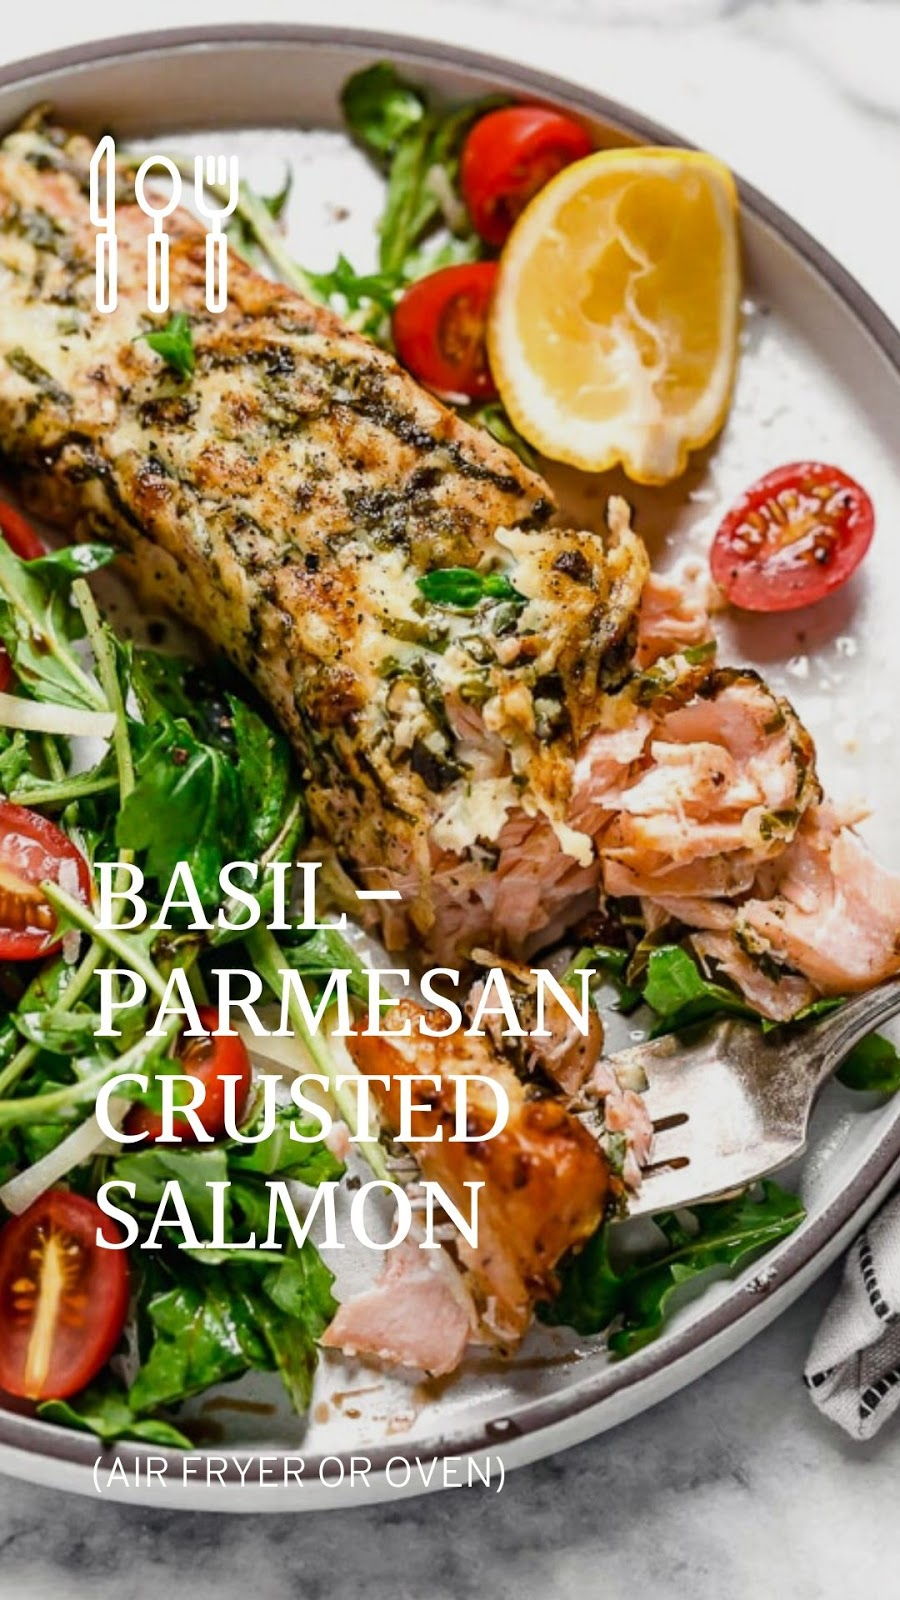 BASIL-PARMESAN CRUSTED SALMON (AIR FRYER OR OVEN)